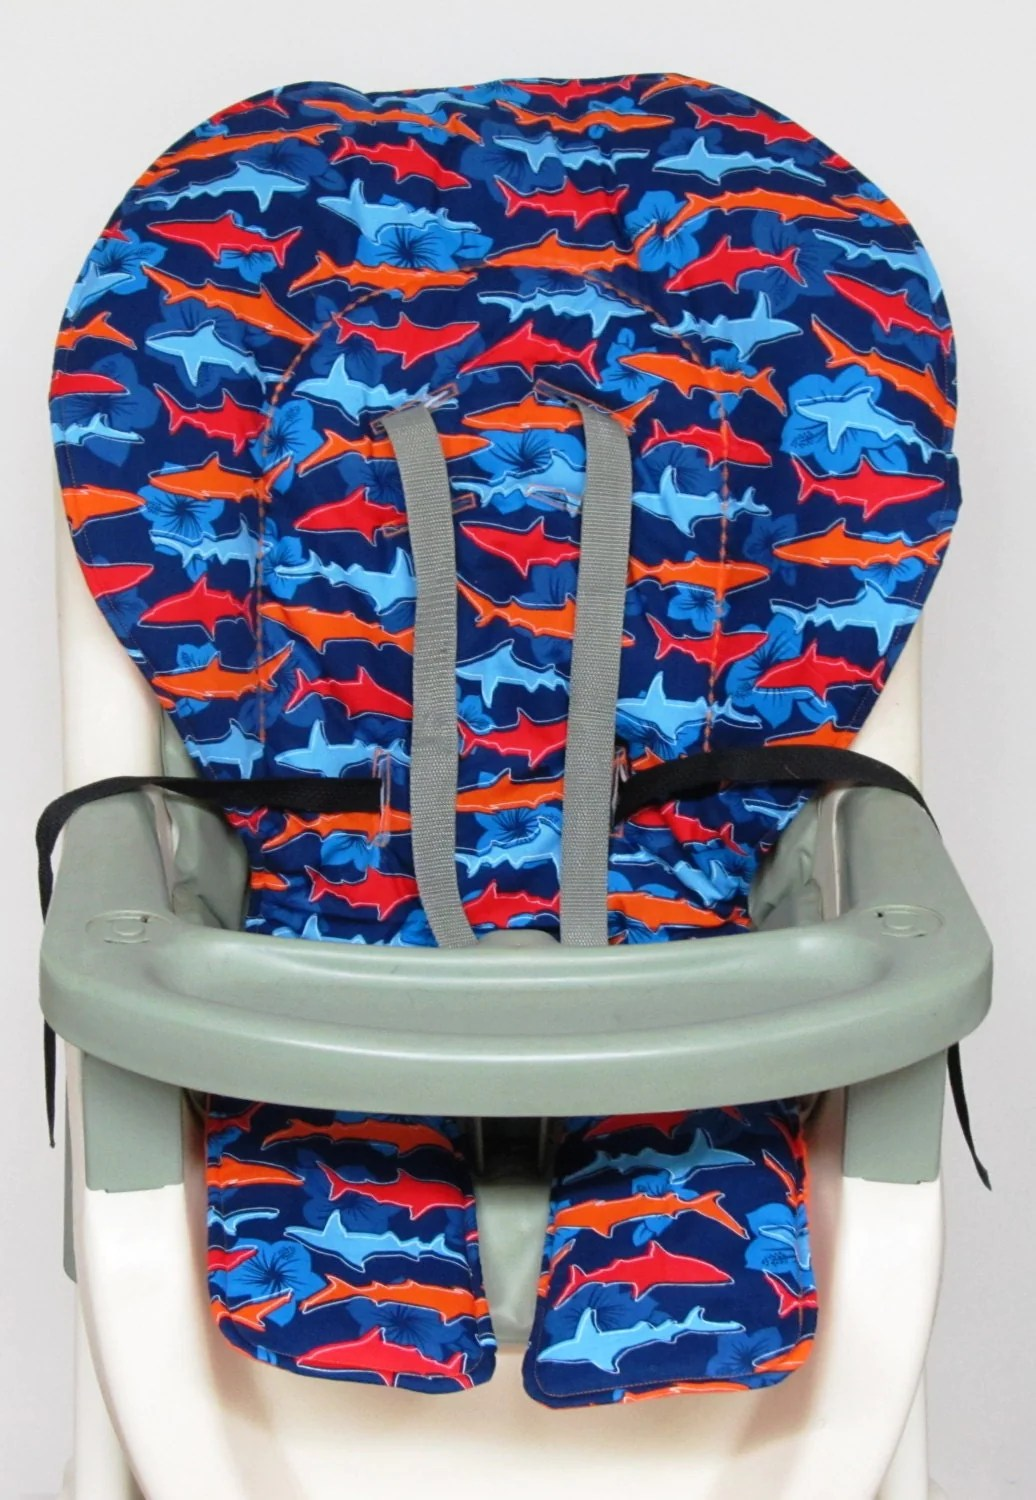 high chair pad graco recycled plastic adirondack chairs uk unavailable listing on etsy